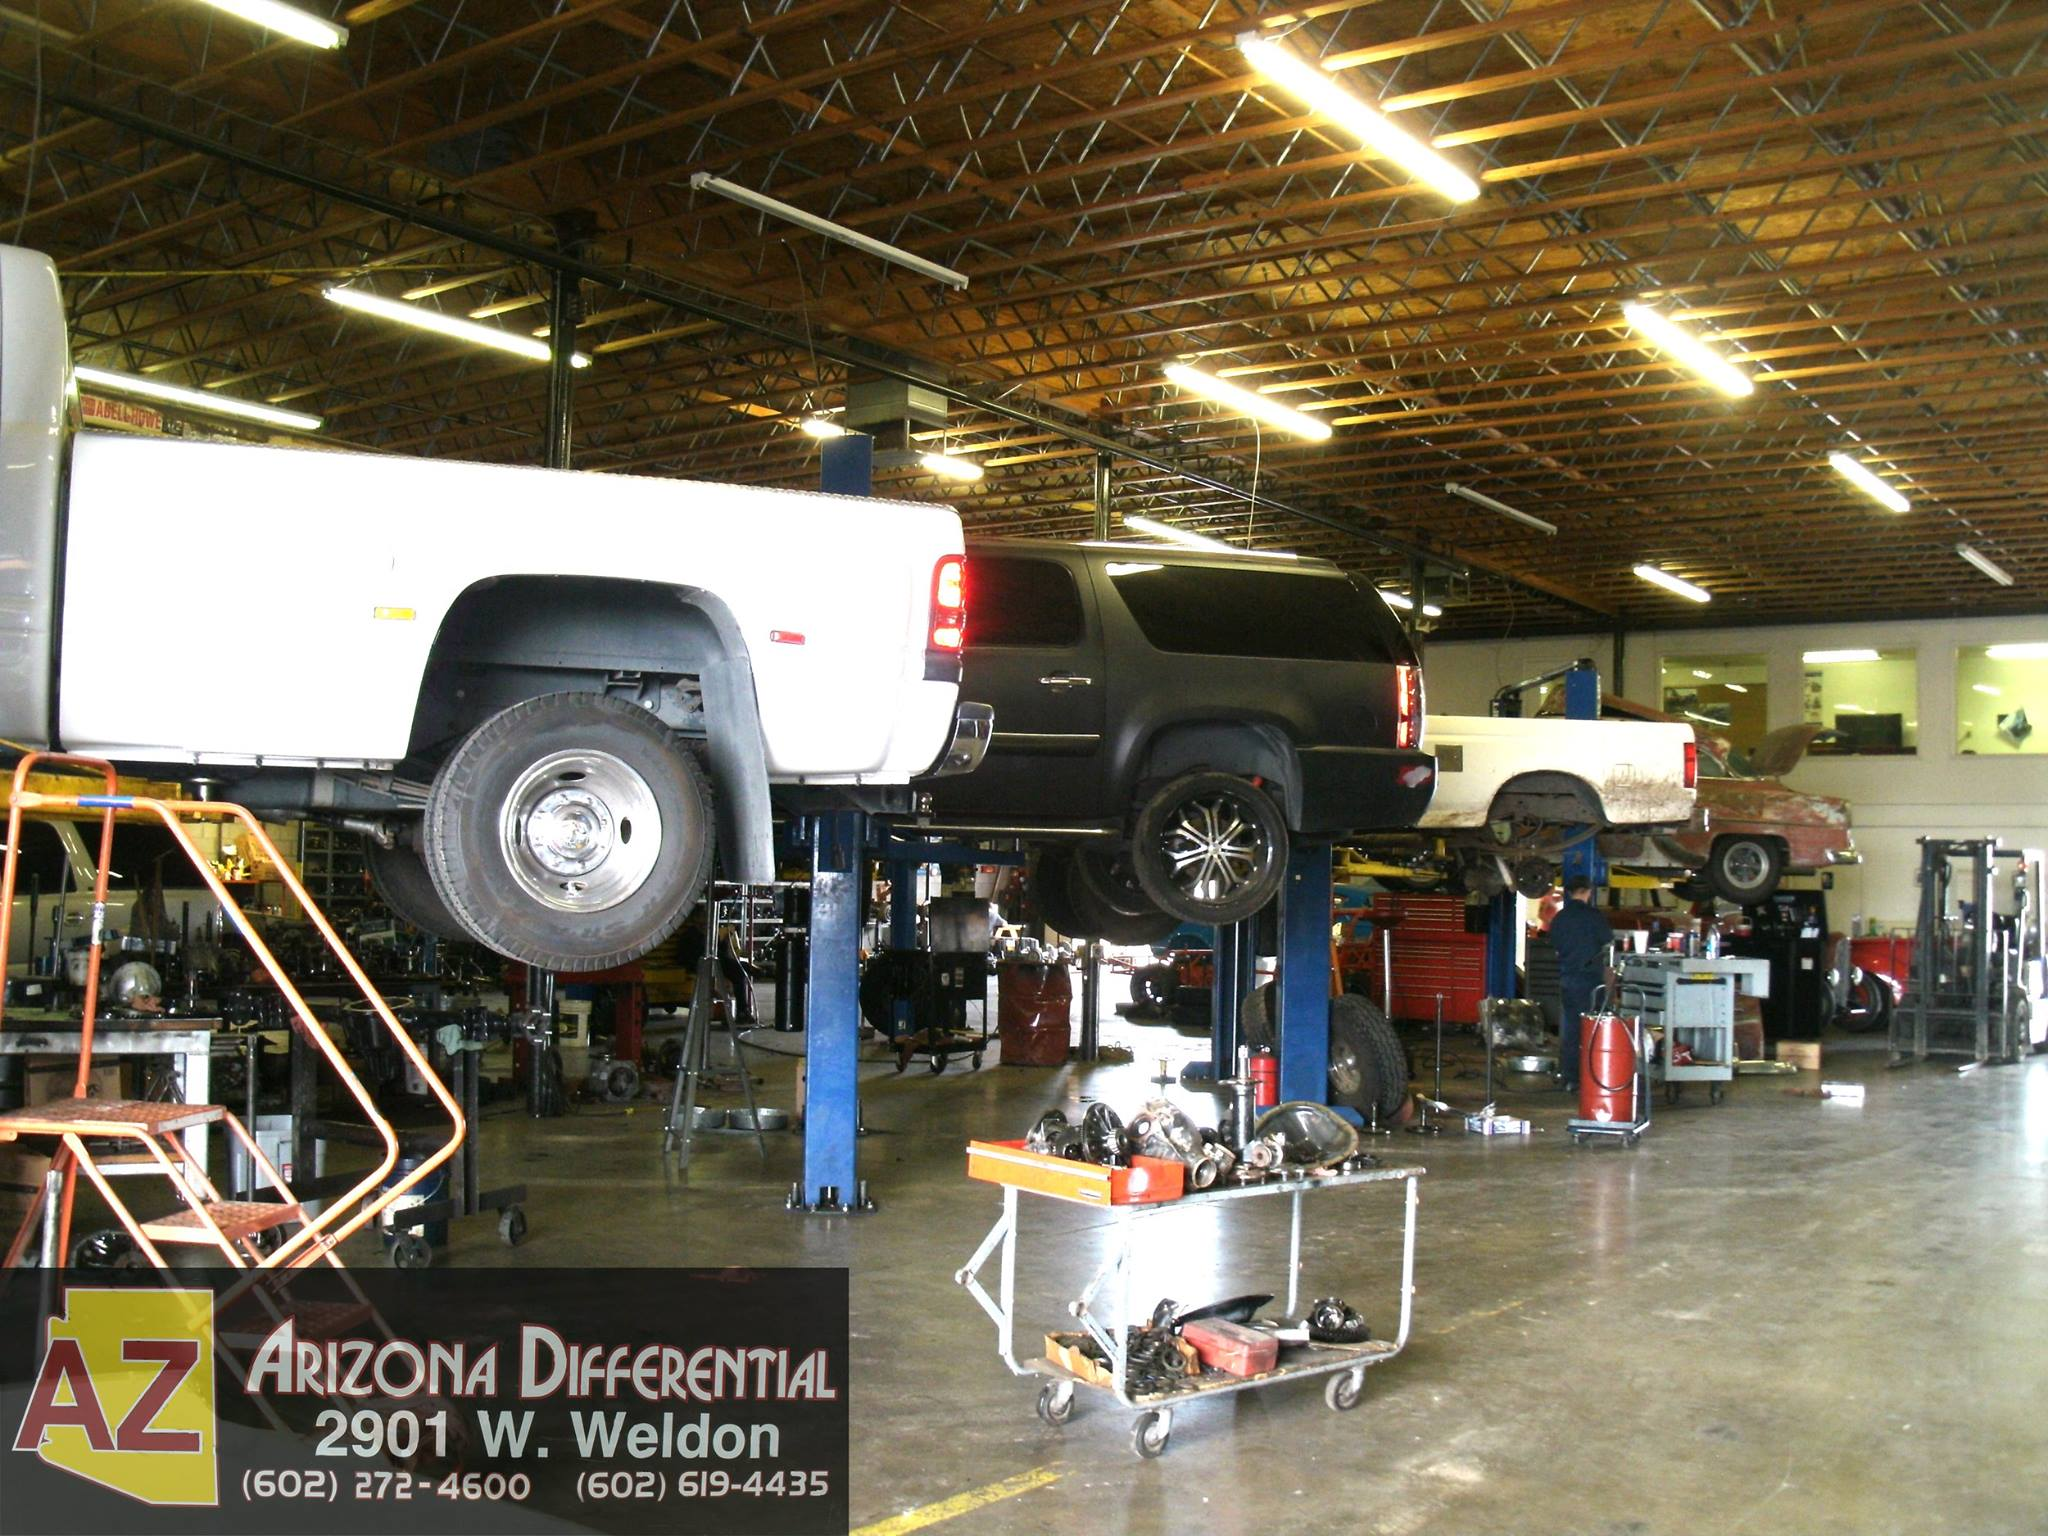 Arizona Differential Inspection